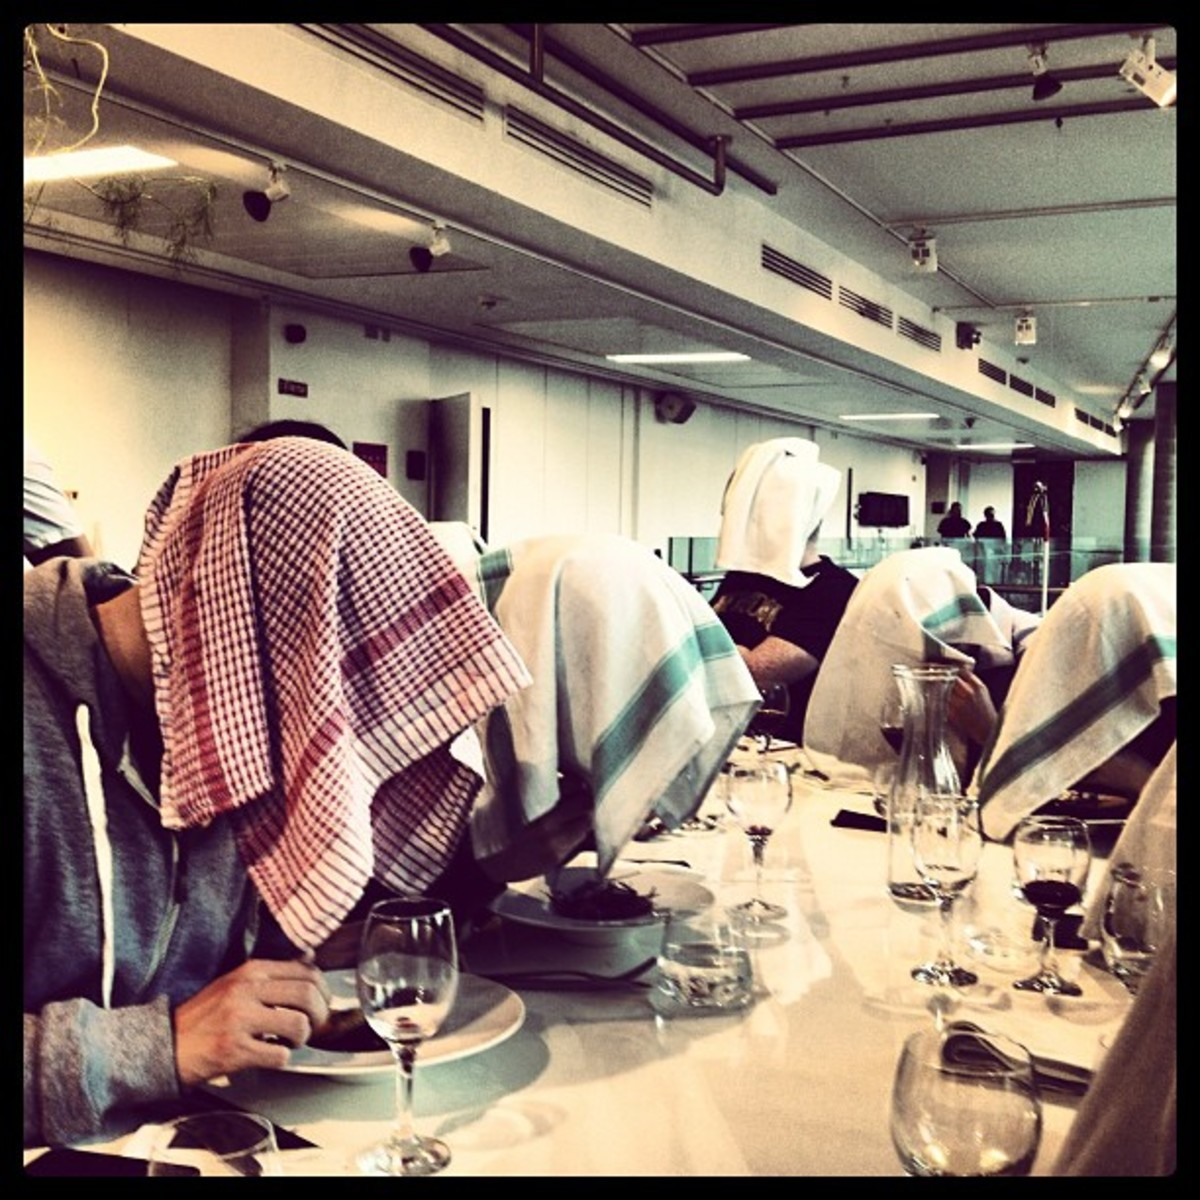 A group of people eating ortolan the traditional way, with napkins covering their heads and faces.